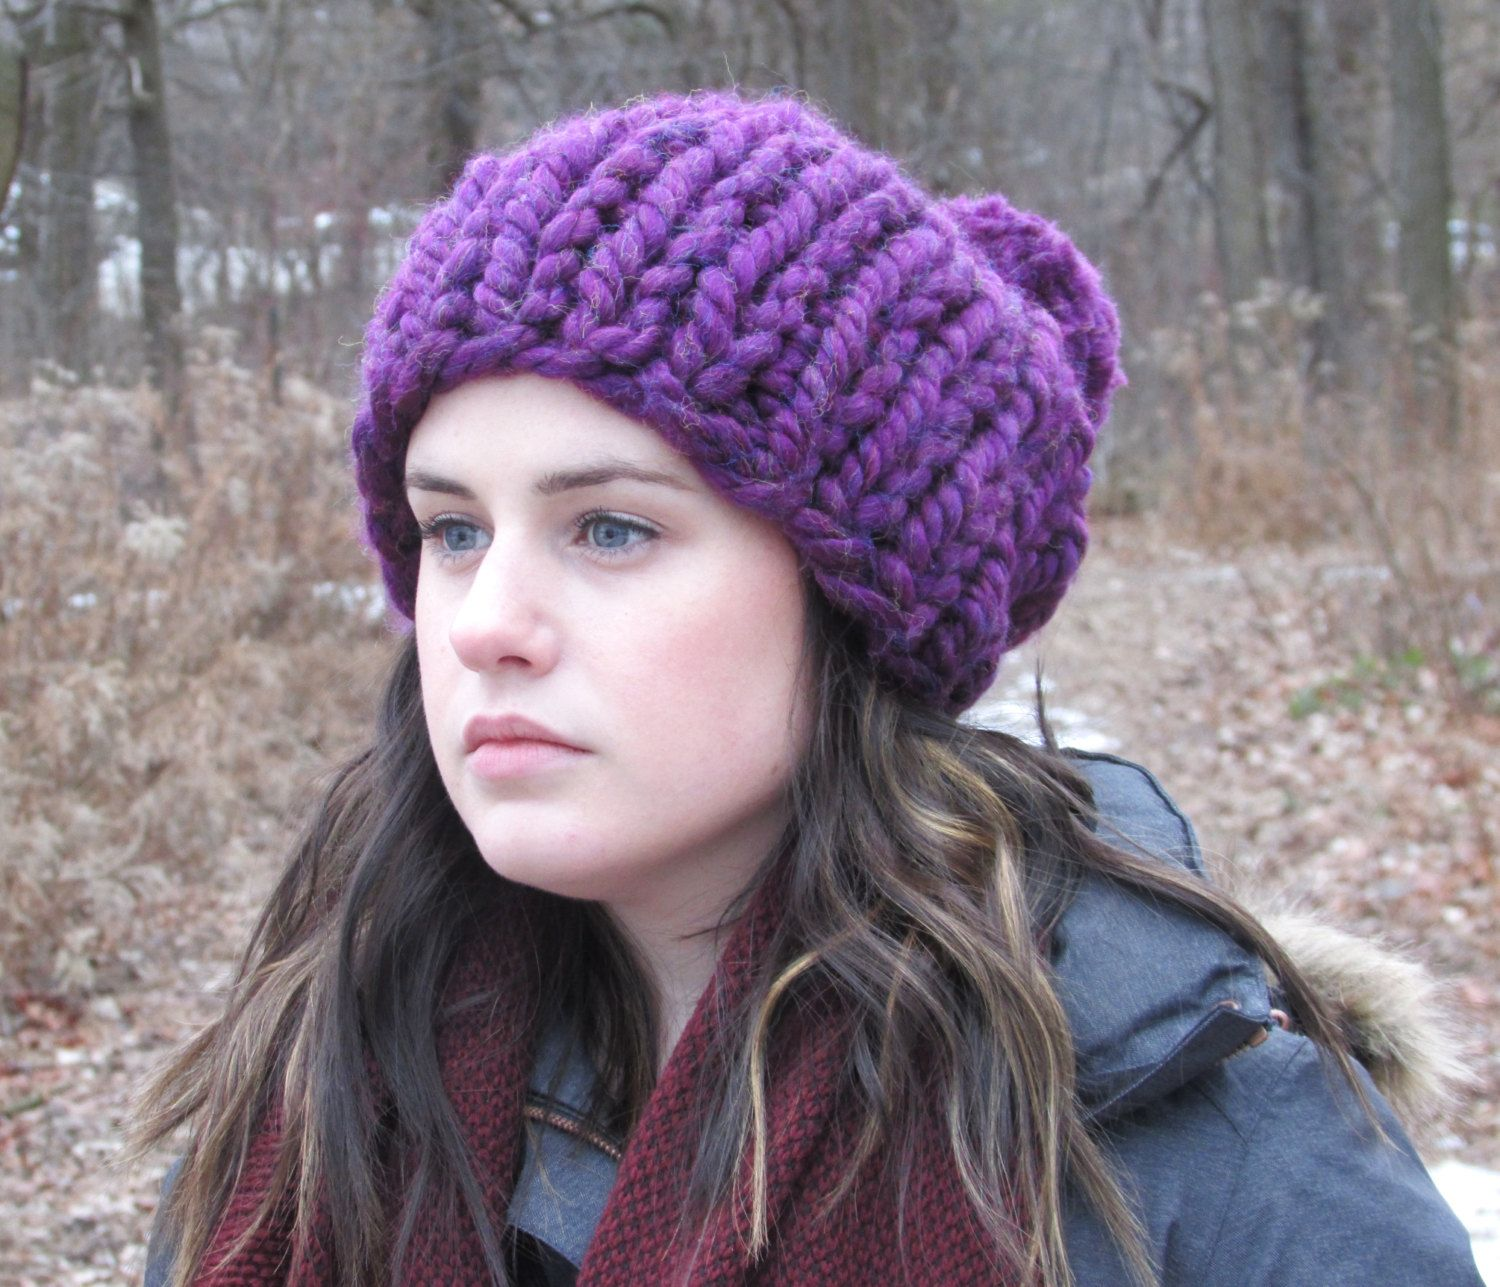 Chunky Knit Hat x Slouch Hat x Thick Knit Beanie x Oversize Winter Hat x  Chunky Pom Pom Hat x Gift for Her x Purple Hat by WoolshedKnits on Etsy 15db16feeeb